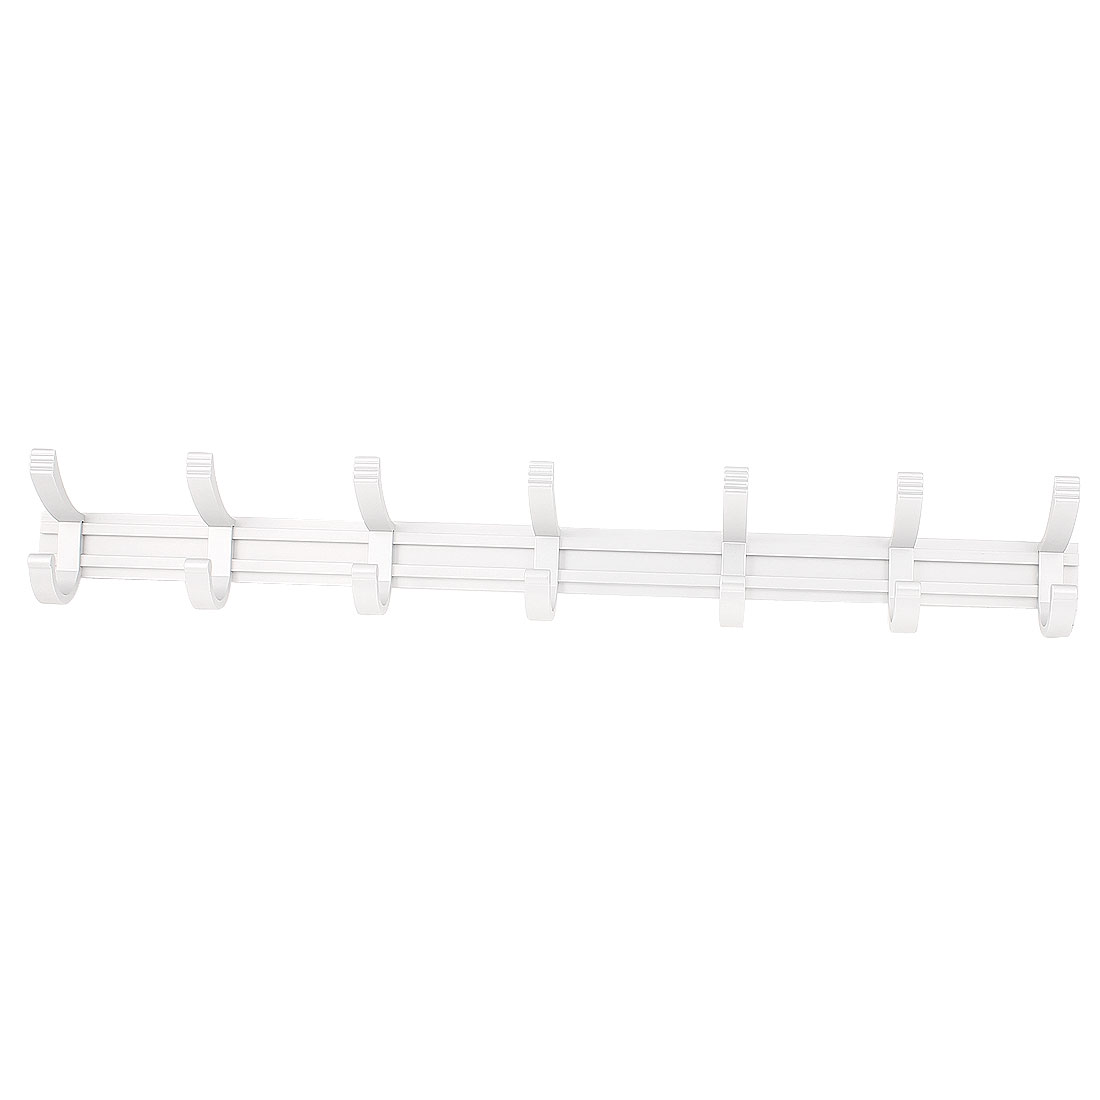 Family Aluminum Wall Mount Towel Clothes Hat Bag 7 Hooks Hanger Rack Silver Tone